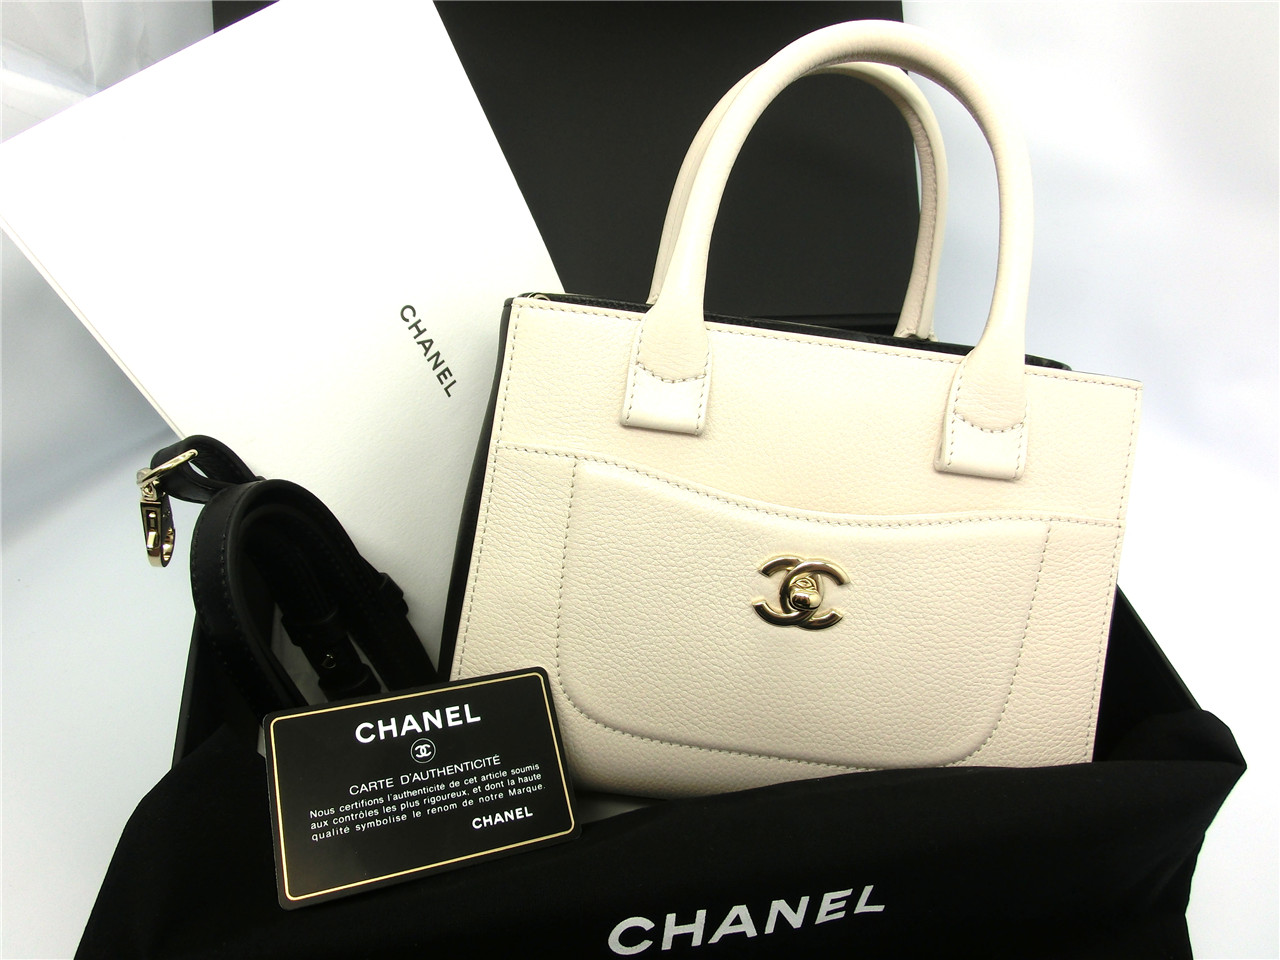 3e0c30bae654 Auth CHANEL Black&Beige Grained Calfskin Leather Neo Executive Mini Shopping  Bag